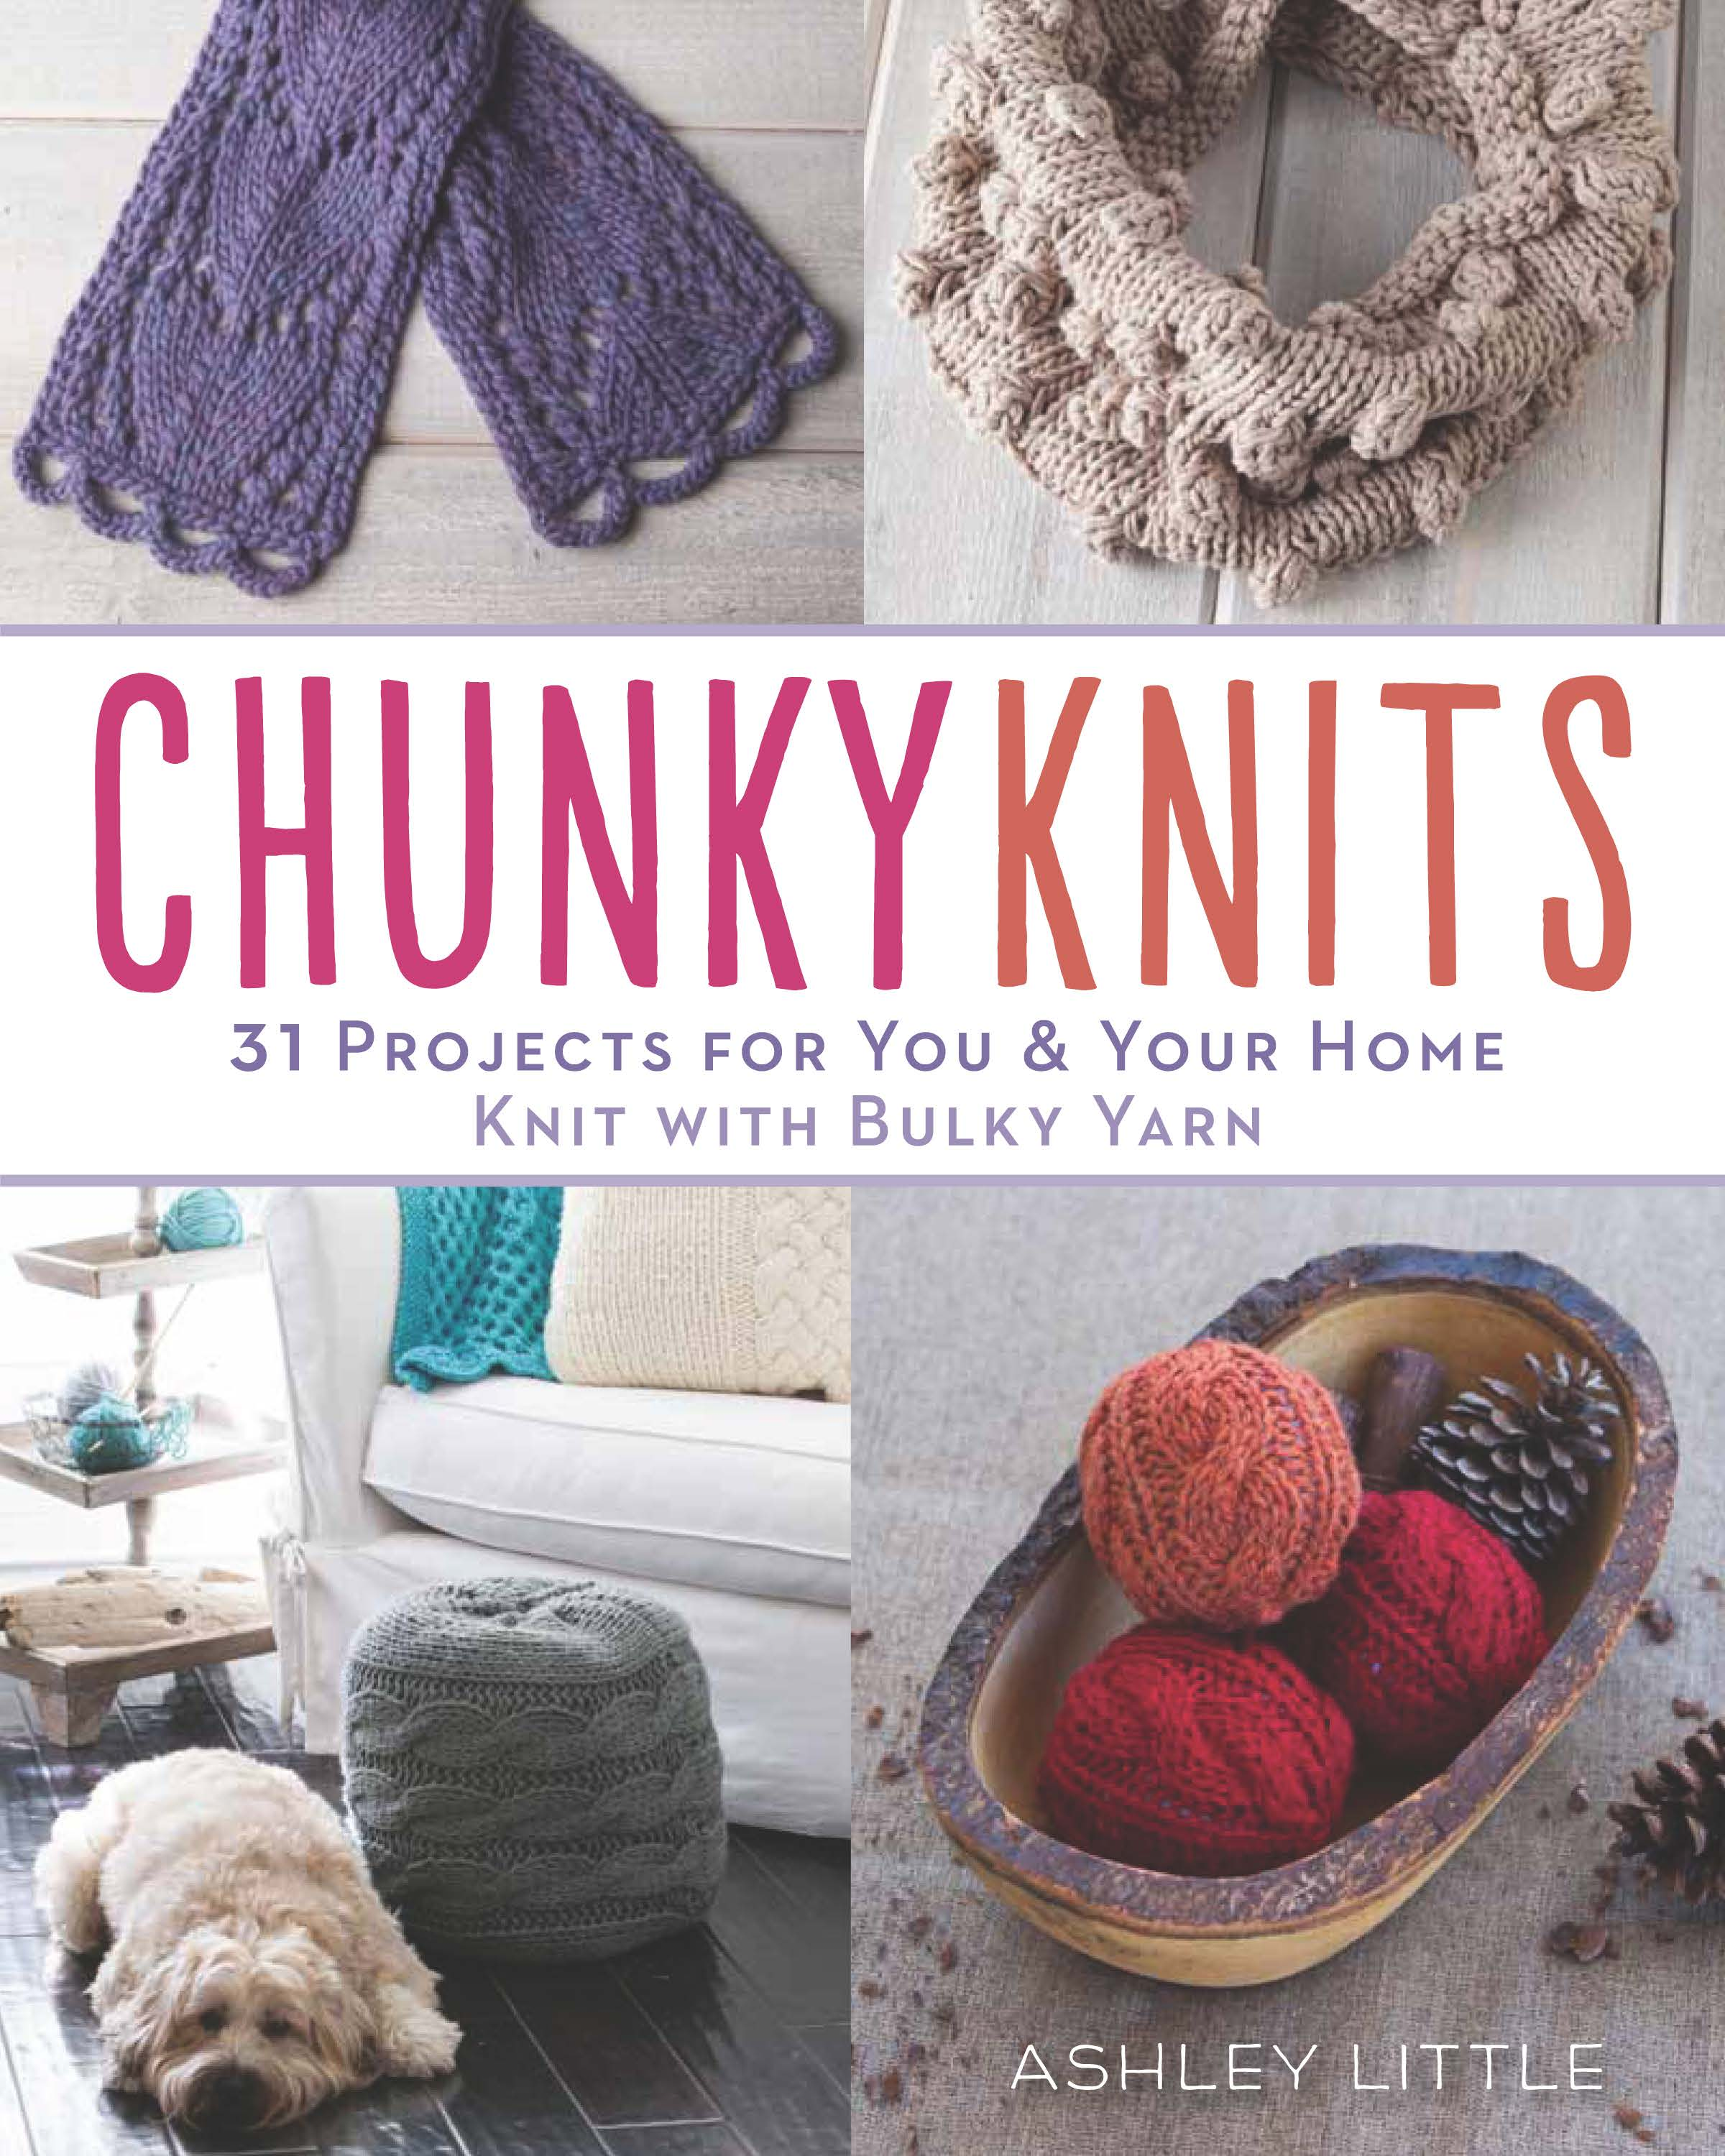 Win a Copy of Chunky Knits!